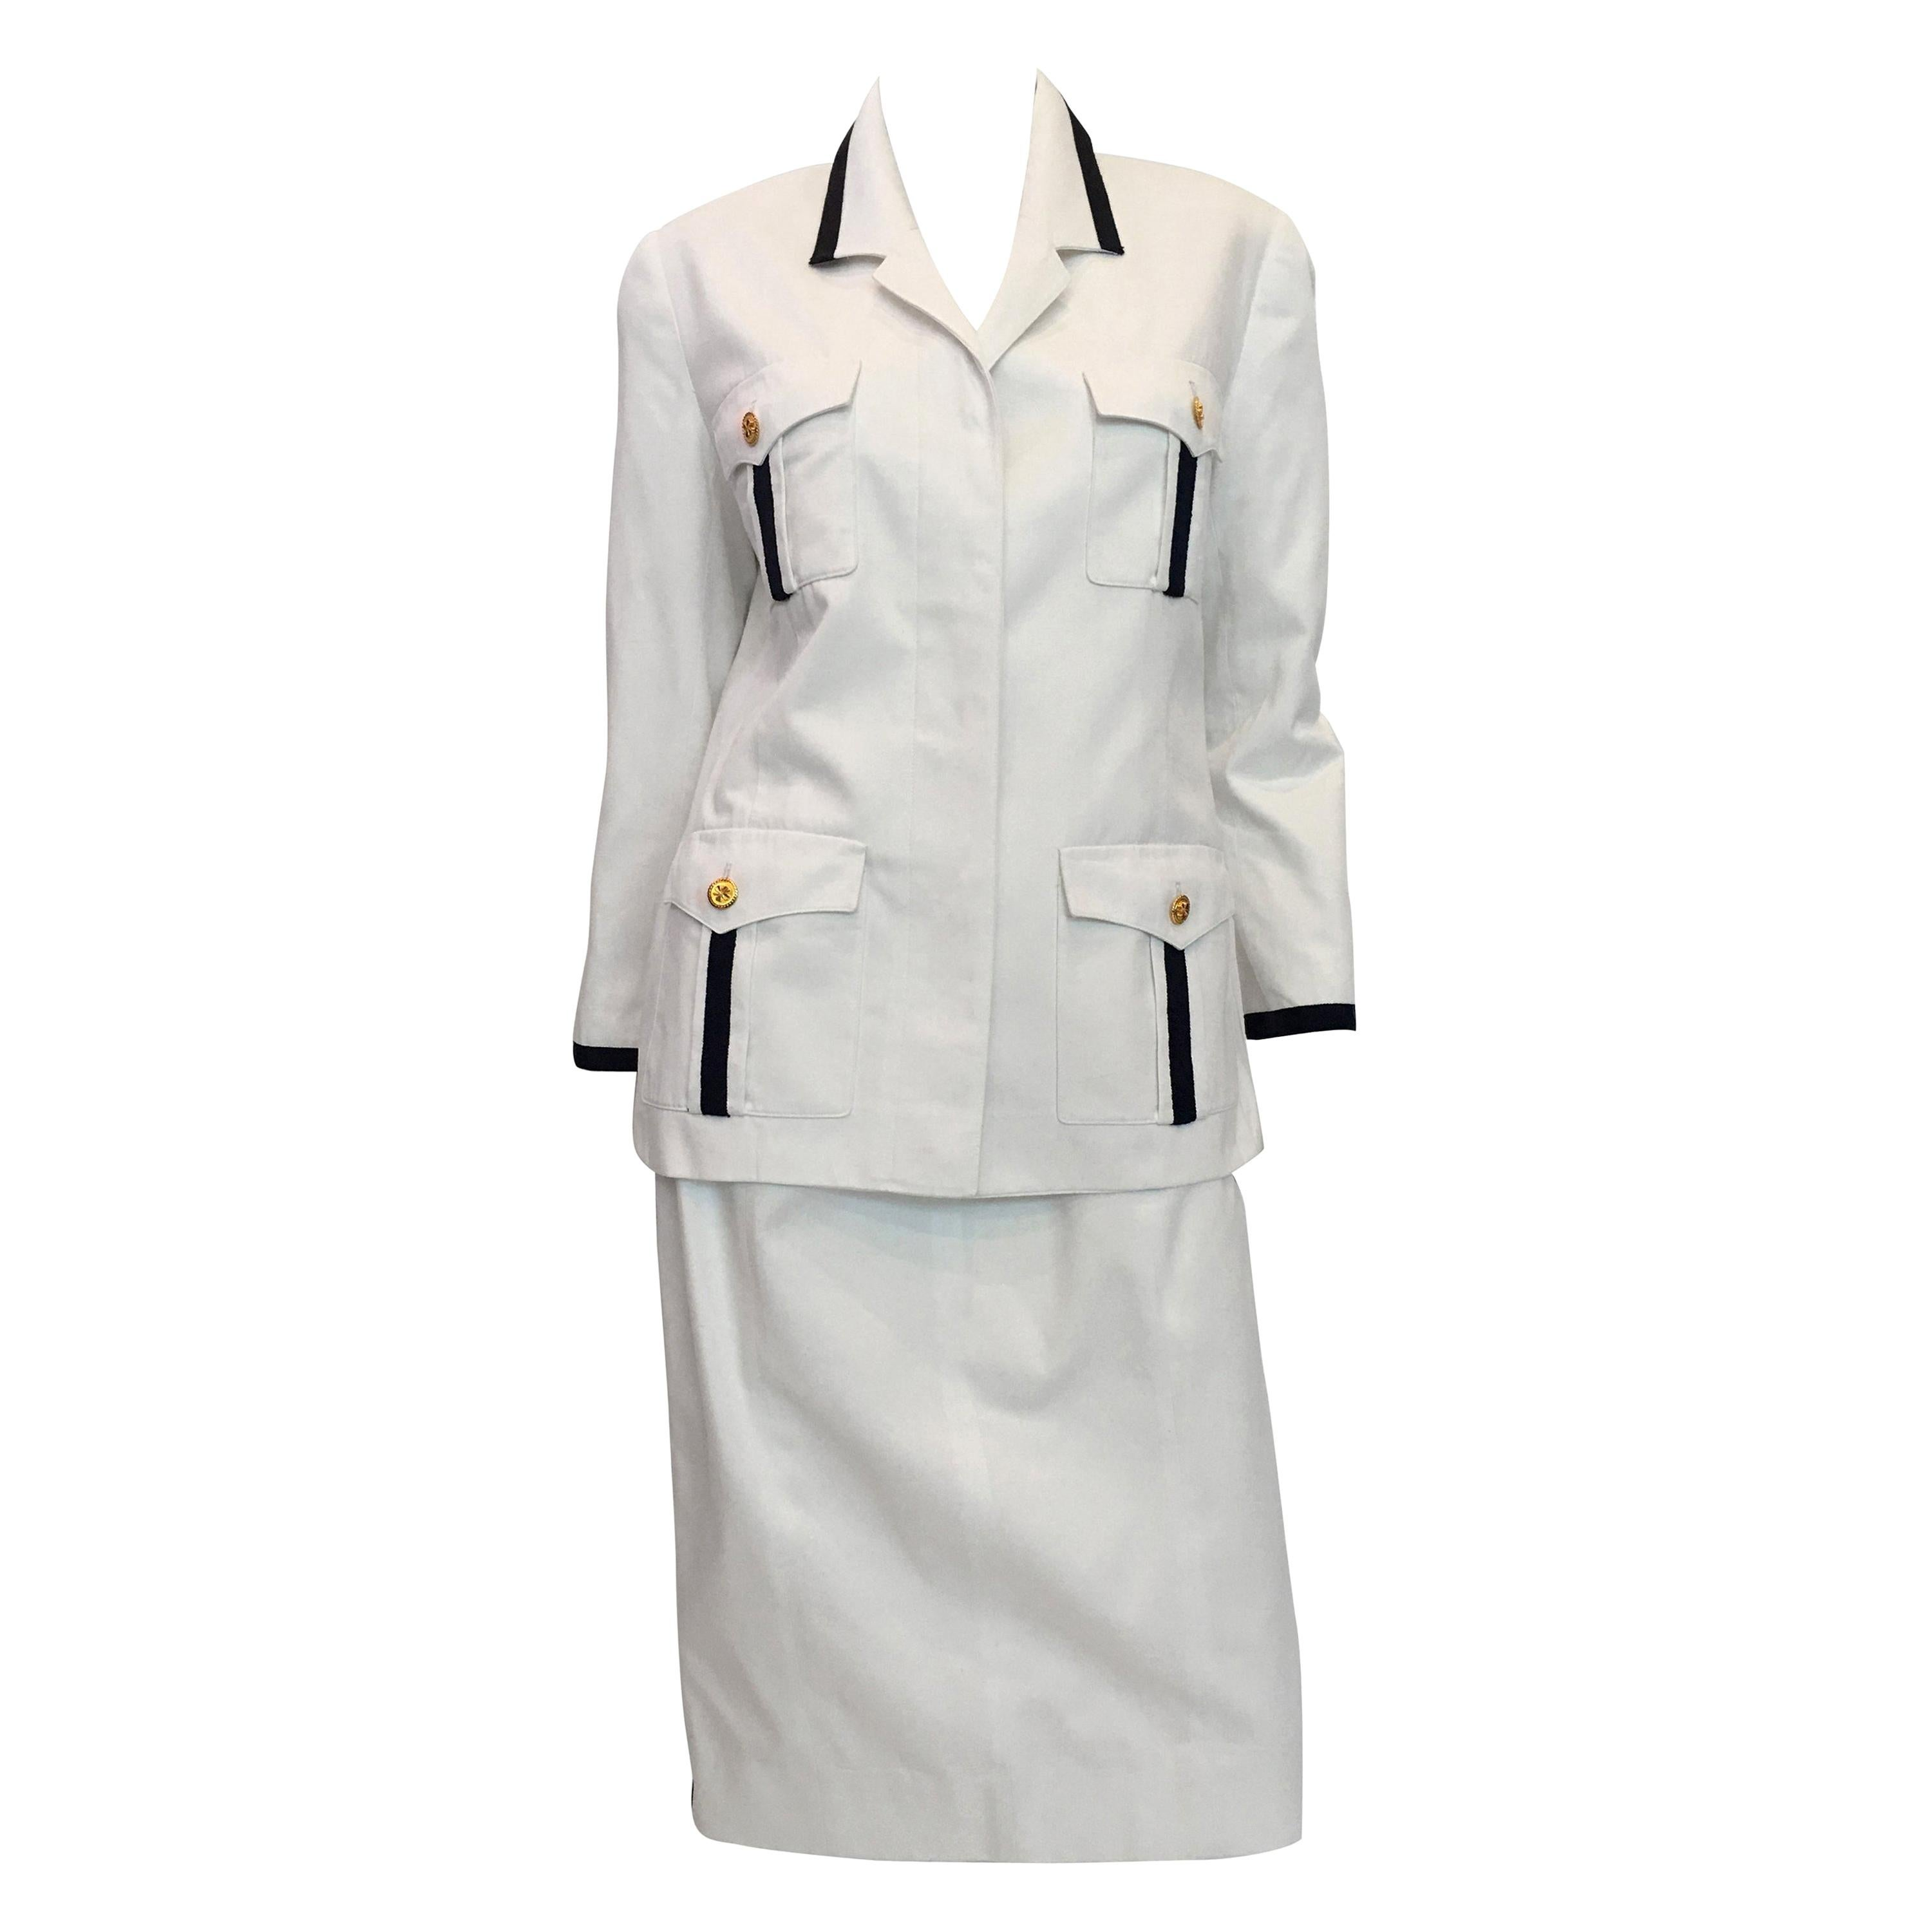 Chanel White Cotton 2 pc Skirt Suit with Navy Blue Trim